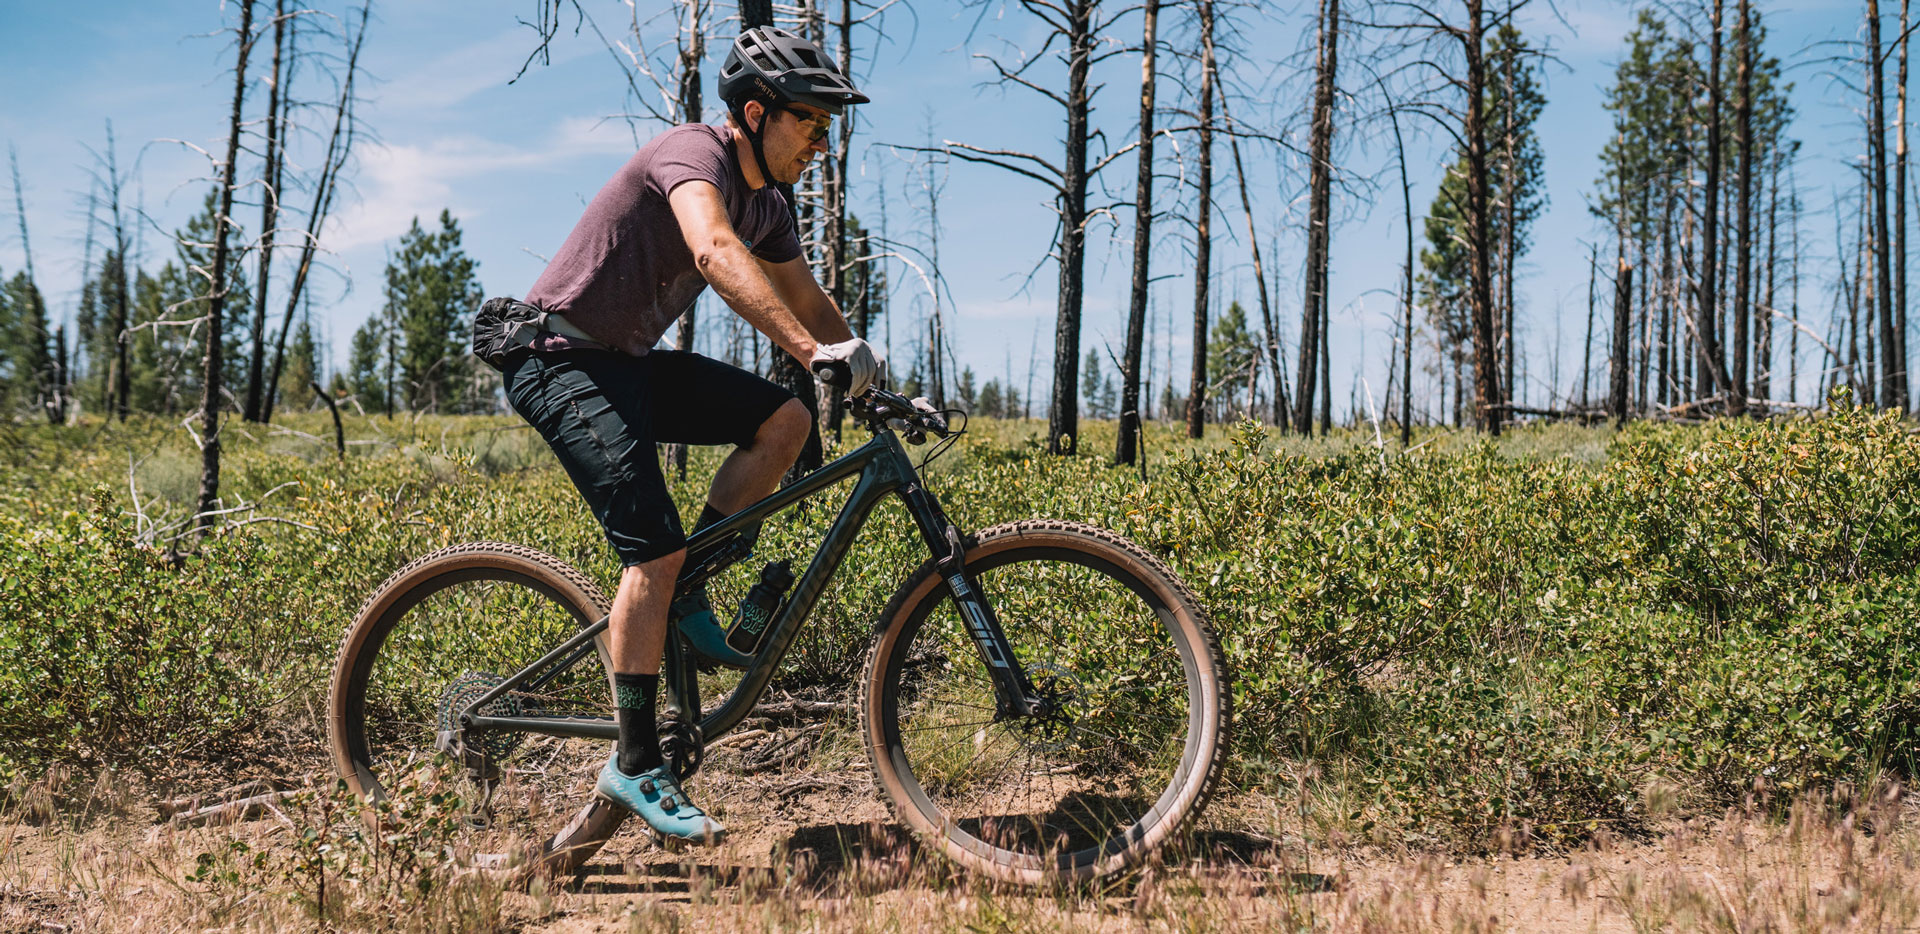 MTB rider on the Specialized Epic Evo S-Works